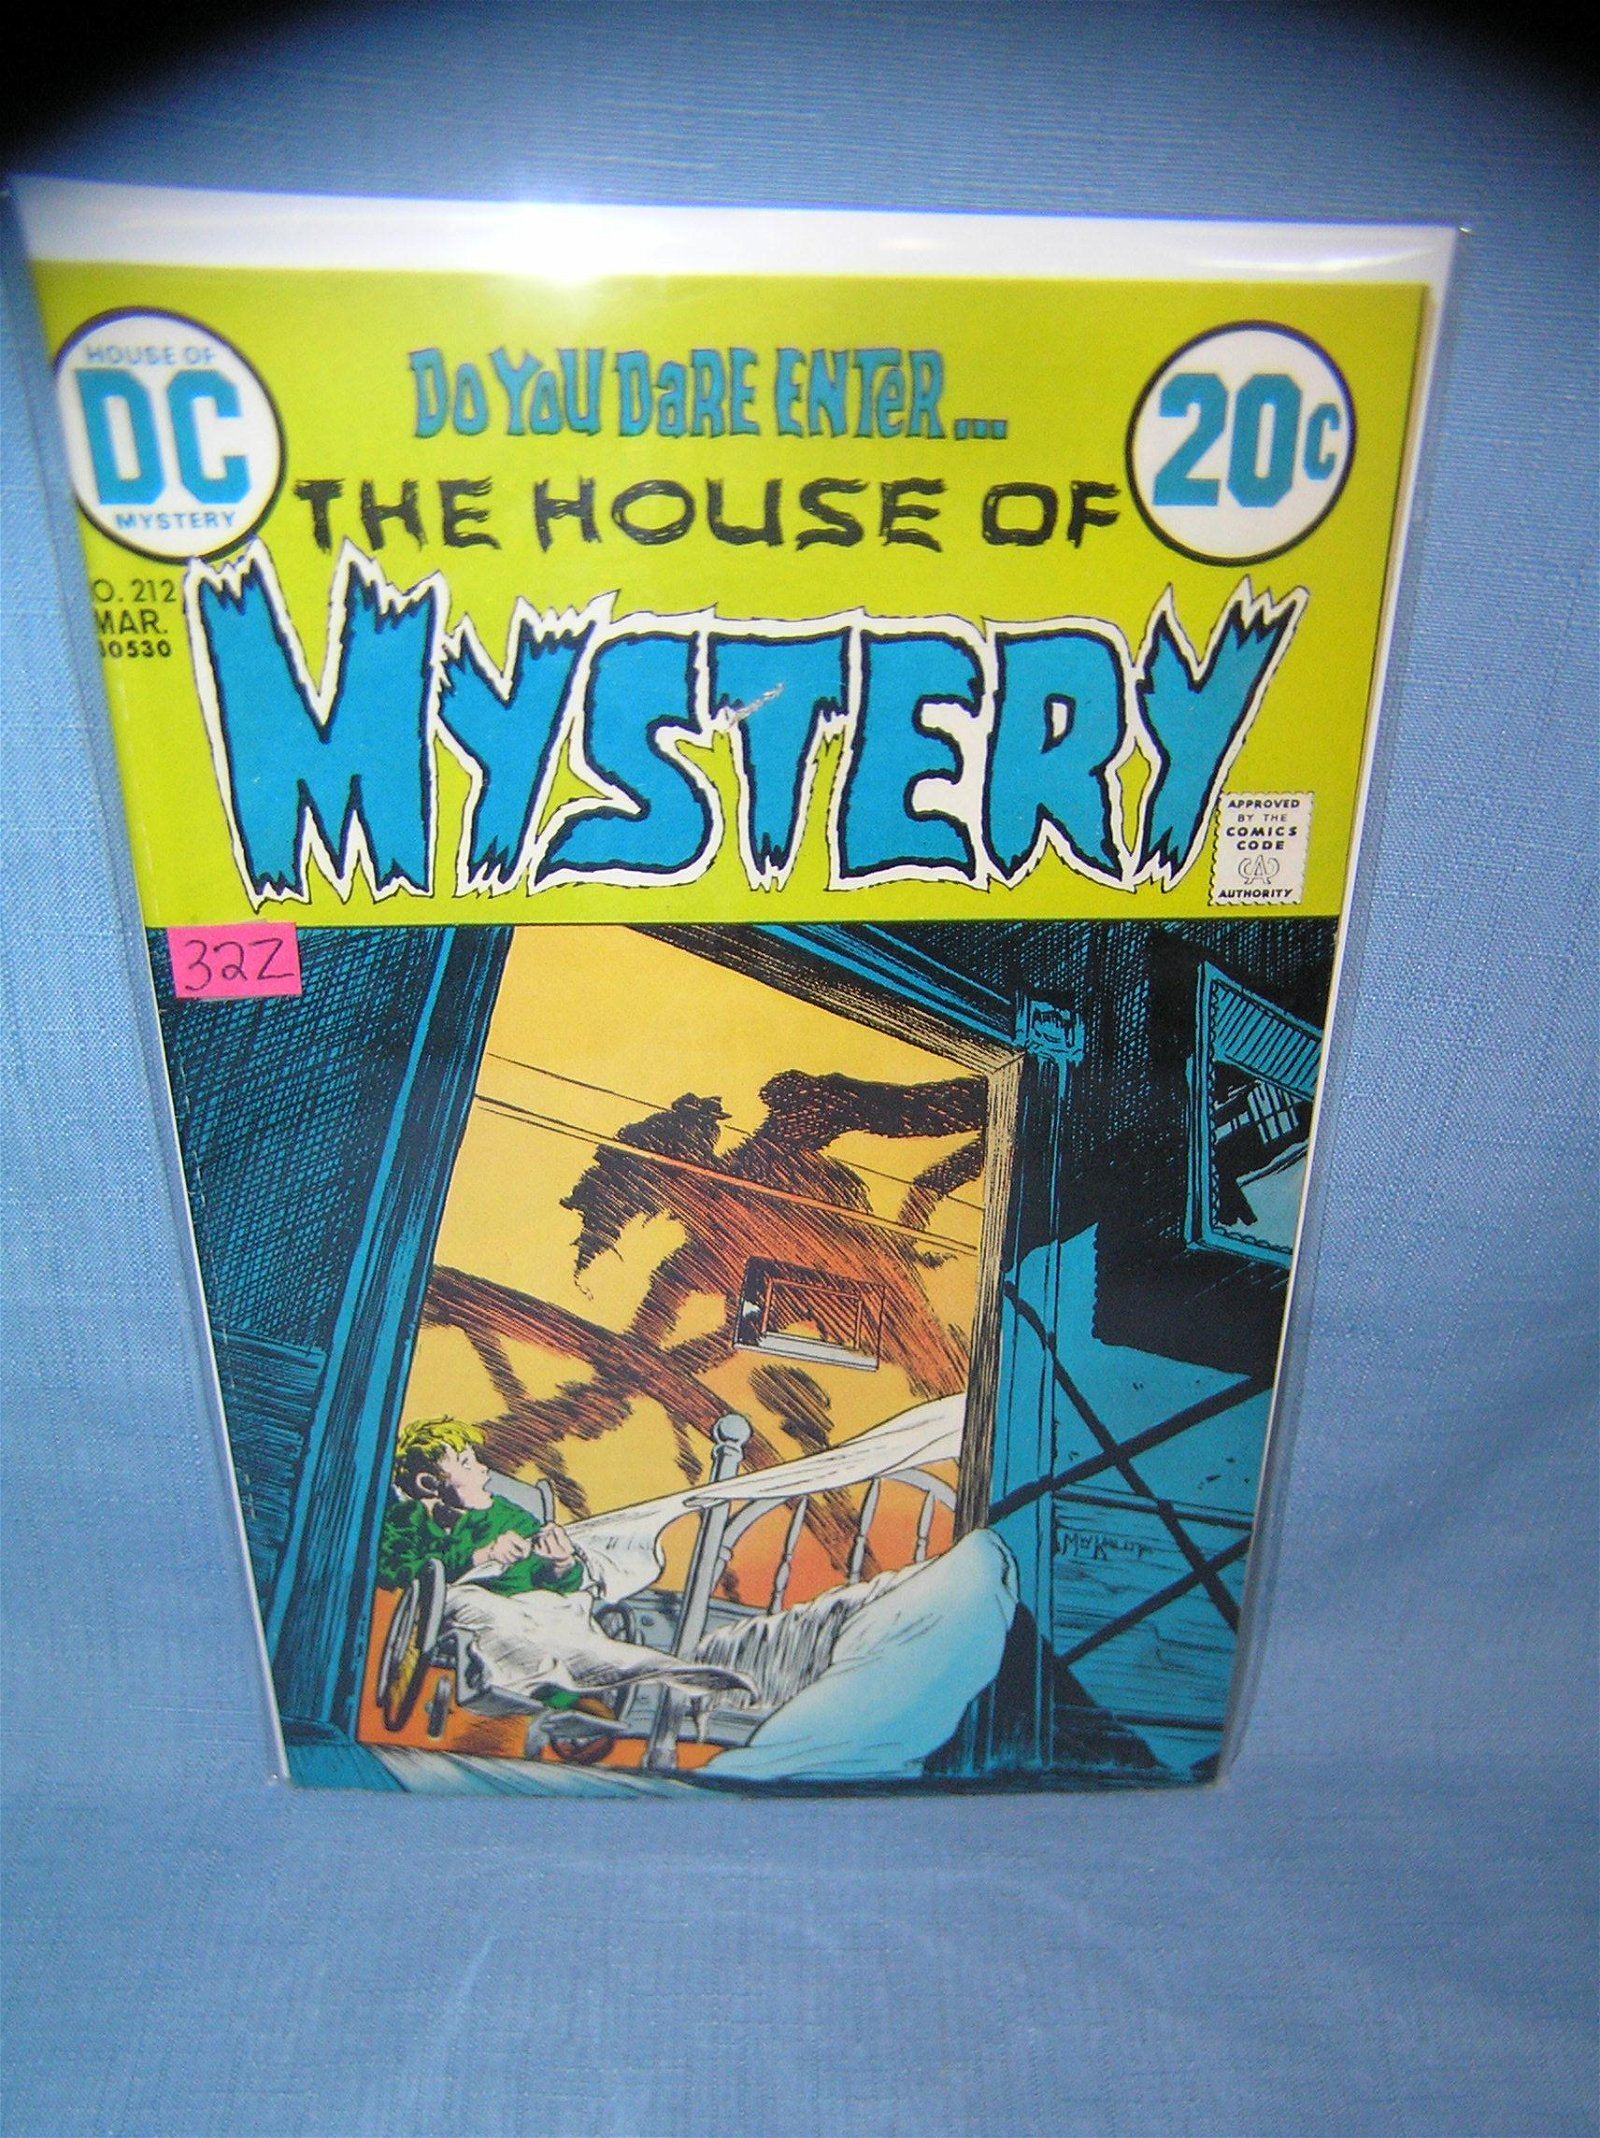 Vintage House of Mystery comic book